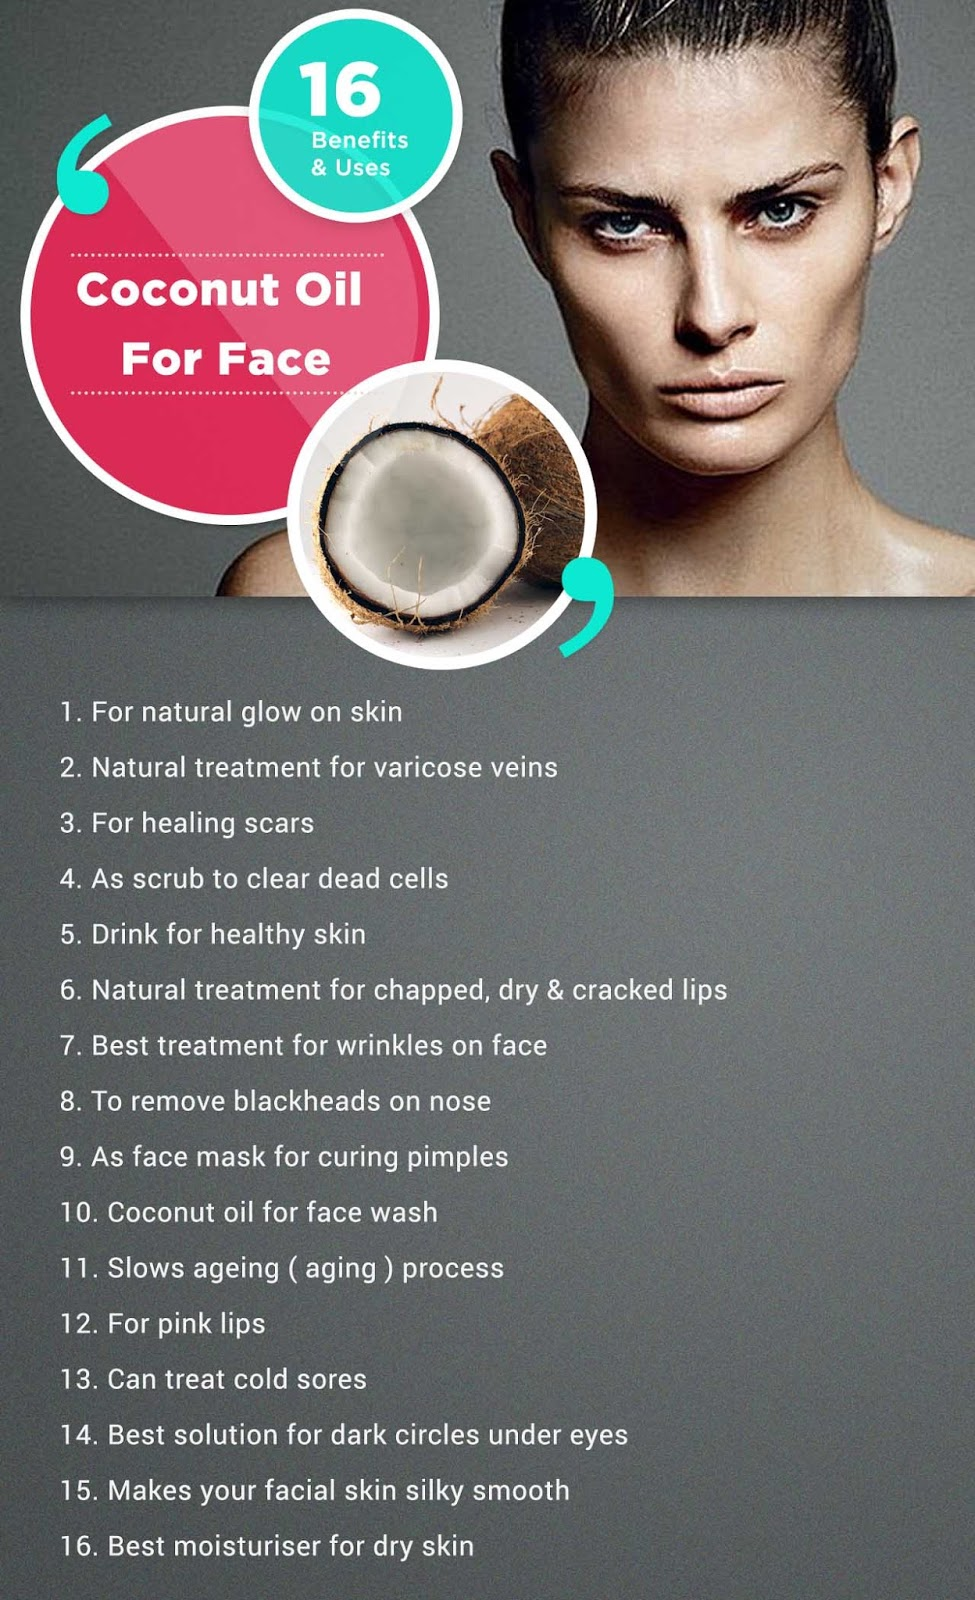 Coconut oil for face Infographic - Uses and Benefits picture - Tipsmonk .jpg